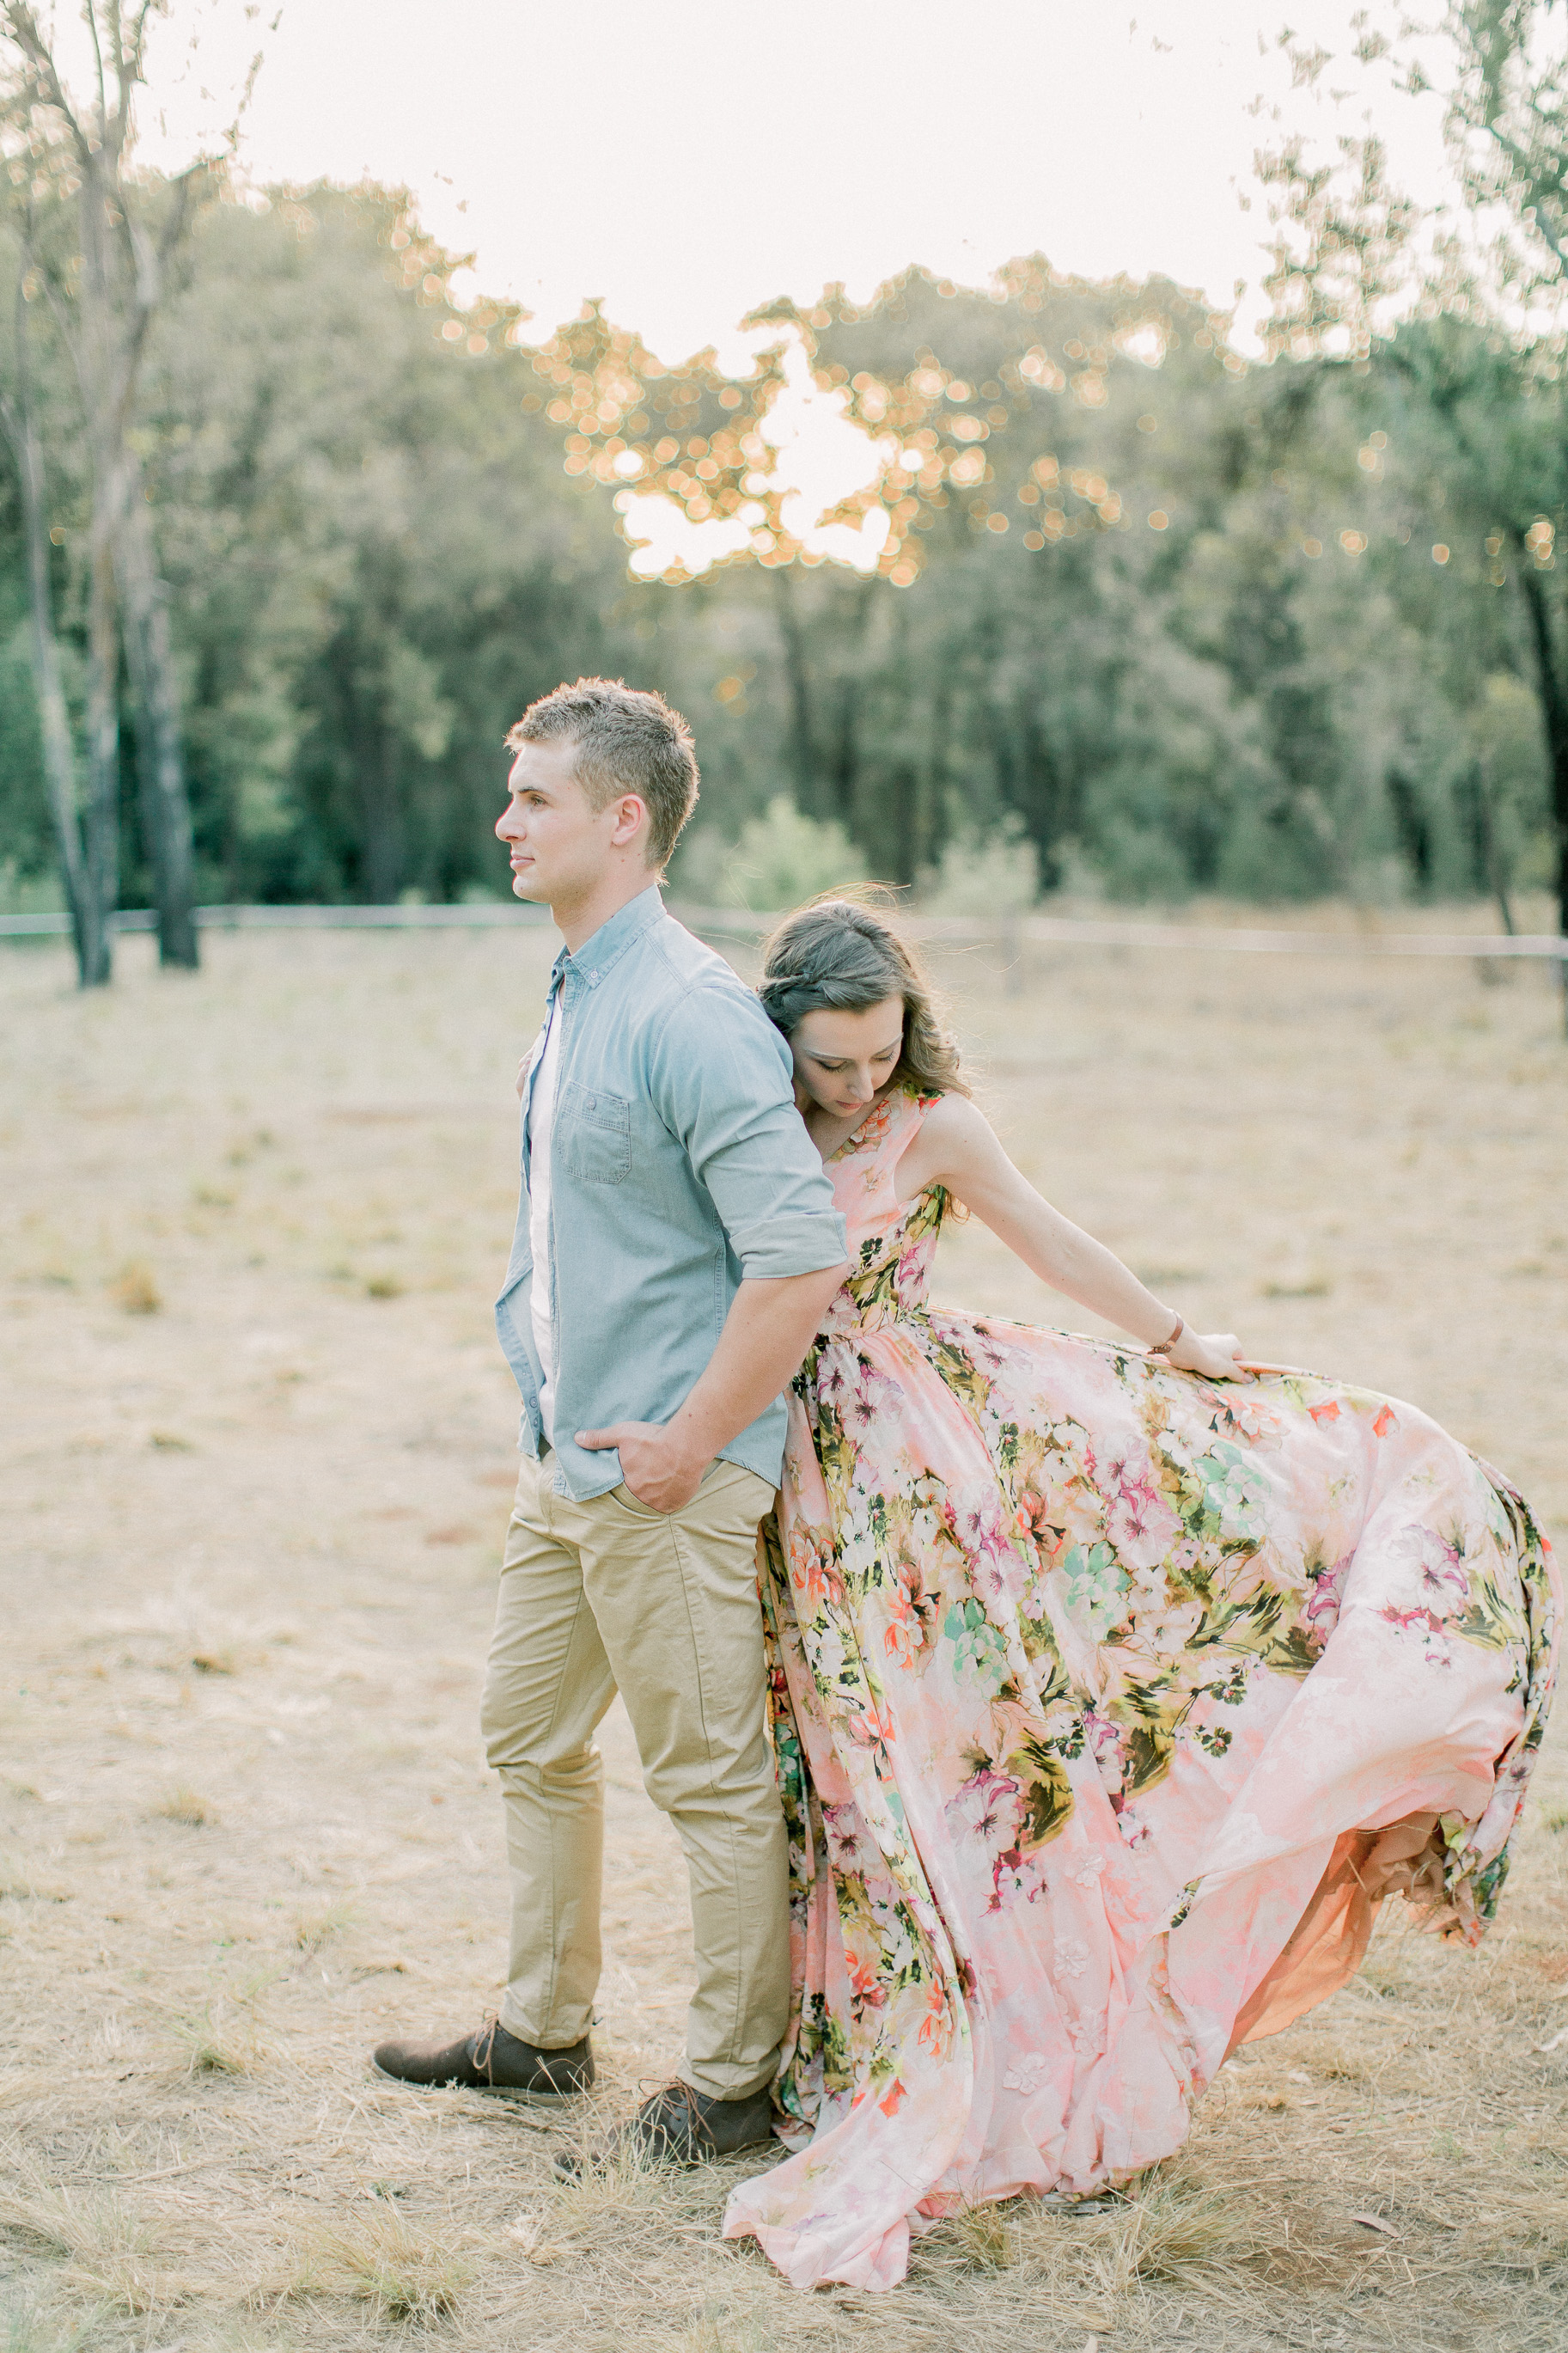 gauteng wedding photographer clareece smit_016.jpg